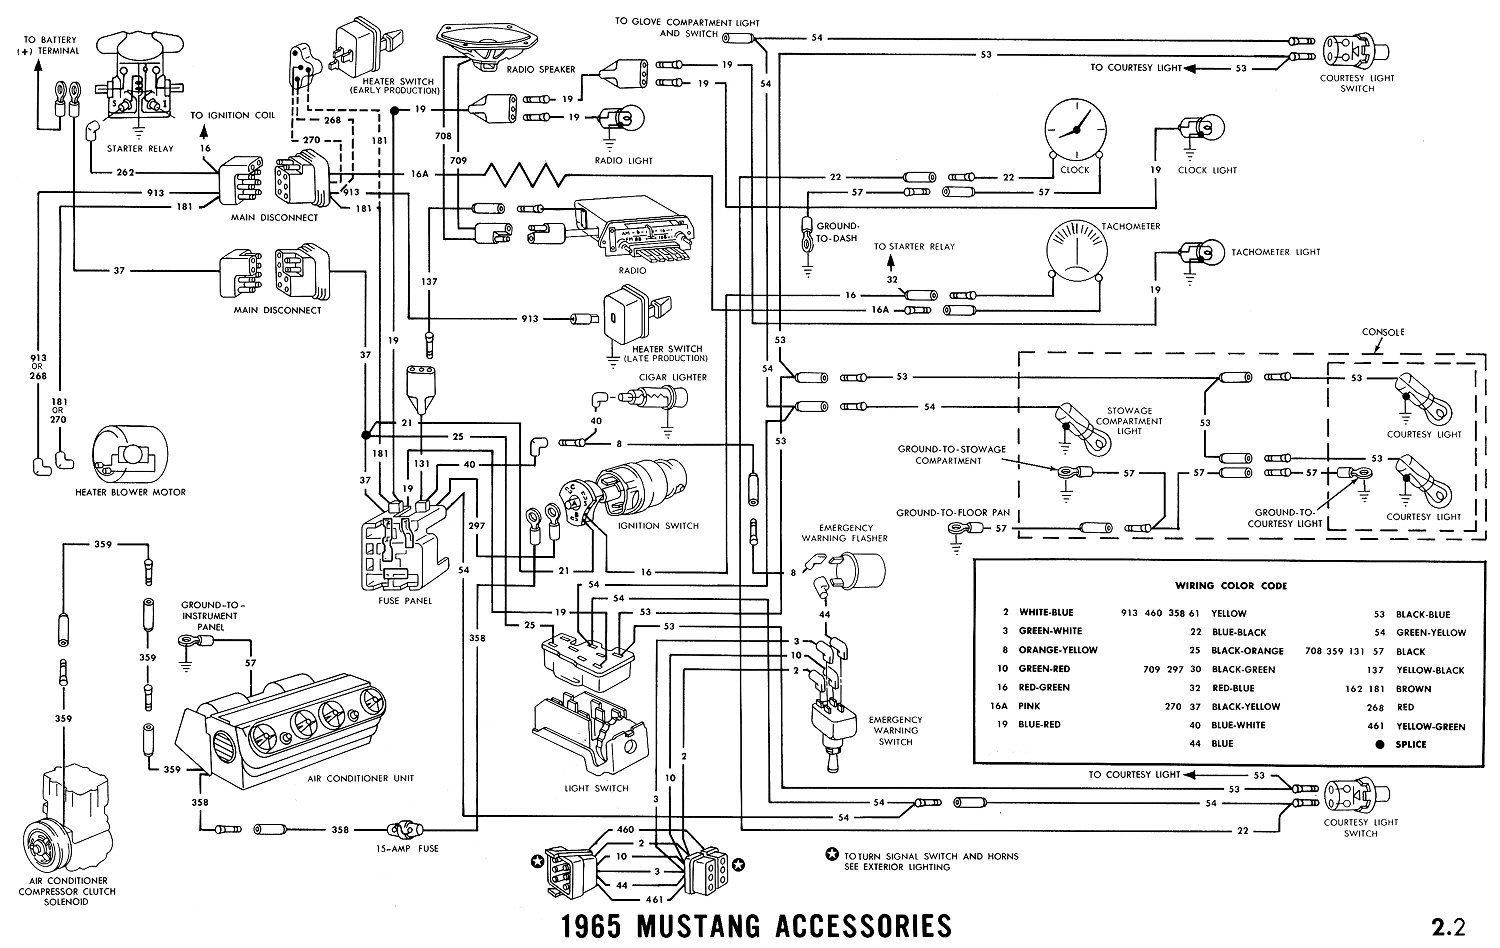 hight resolution of 1965 mustang wiring diagrams average joe restoration 1995 ford mustang wiring diagram 1965 mustang wiring diagram manual